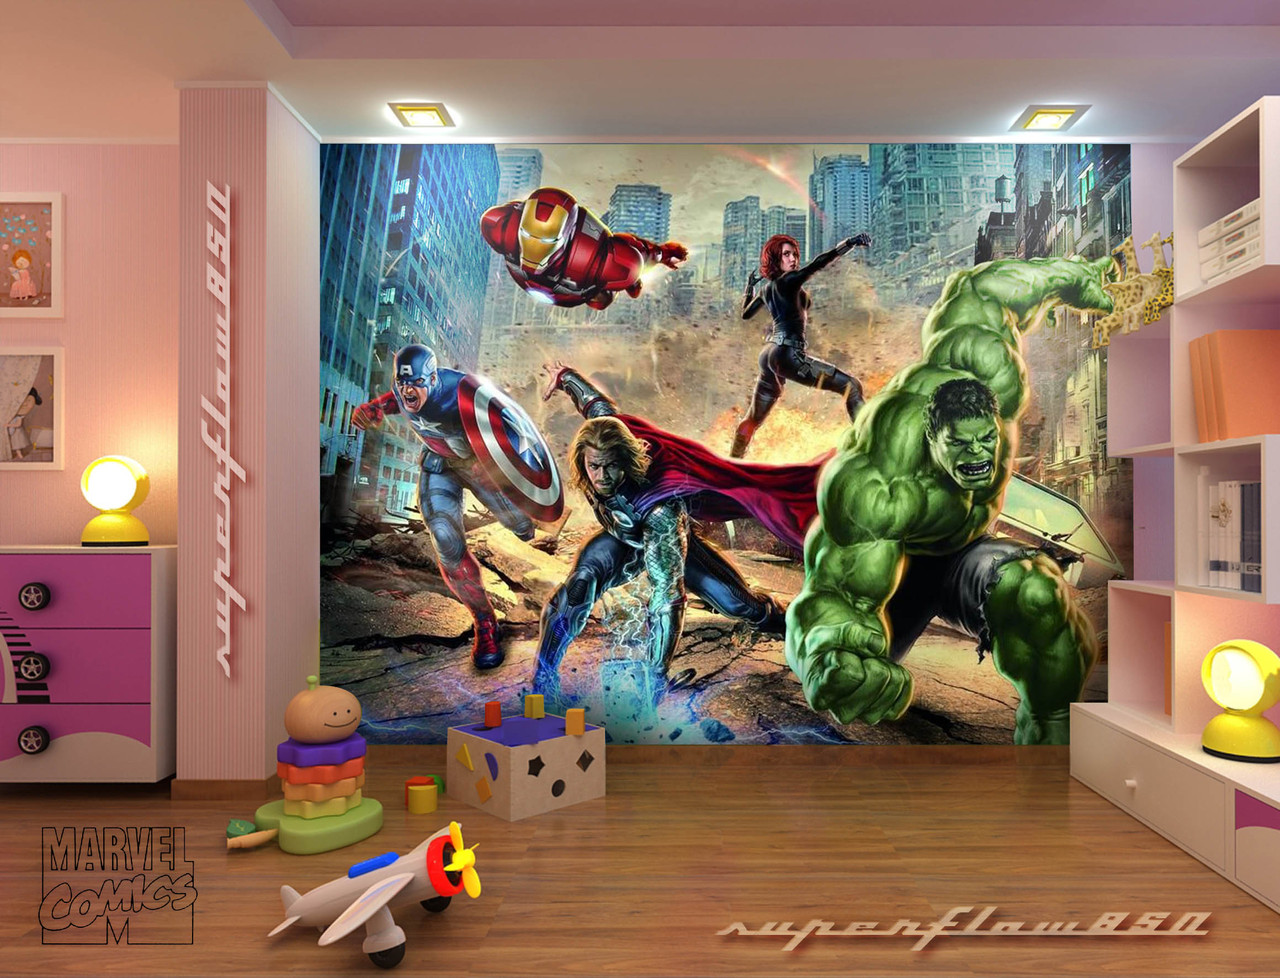 Avengers-Mural-Love-this-My-boys-room-has-Ninja-turtles-Power-rangers-Avengers-haha-each-wal-wallpaper-wp5803706